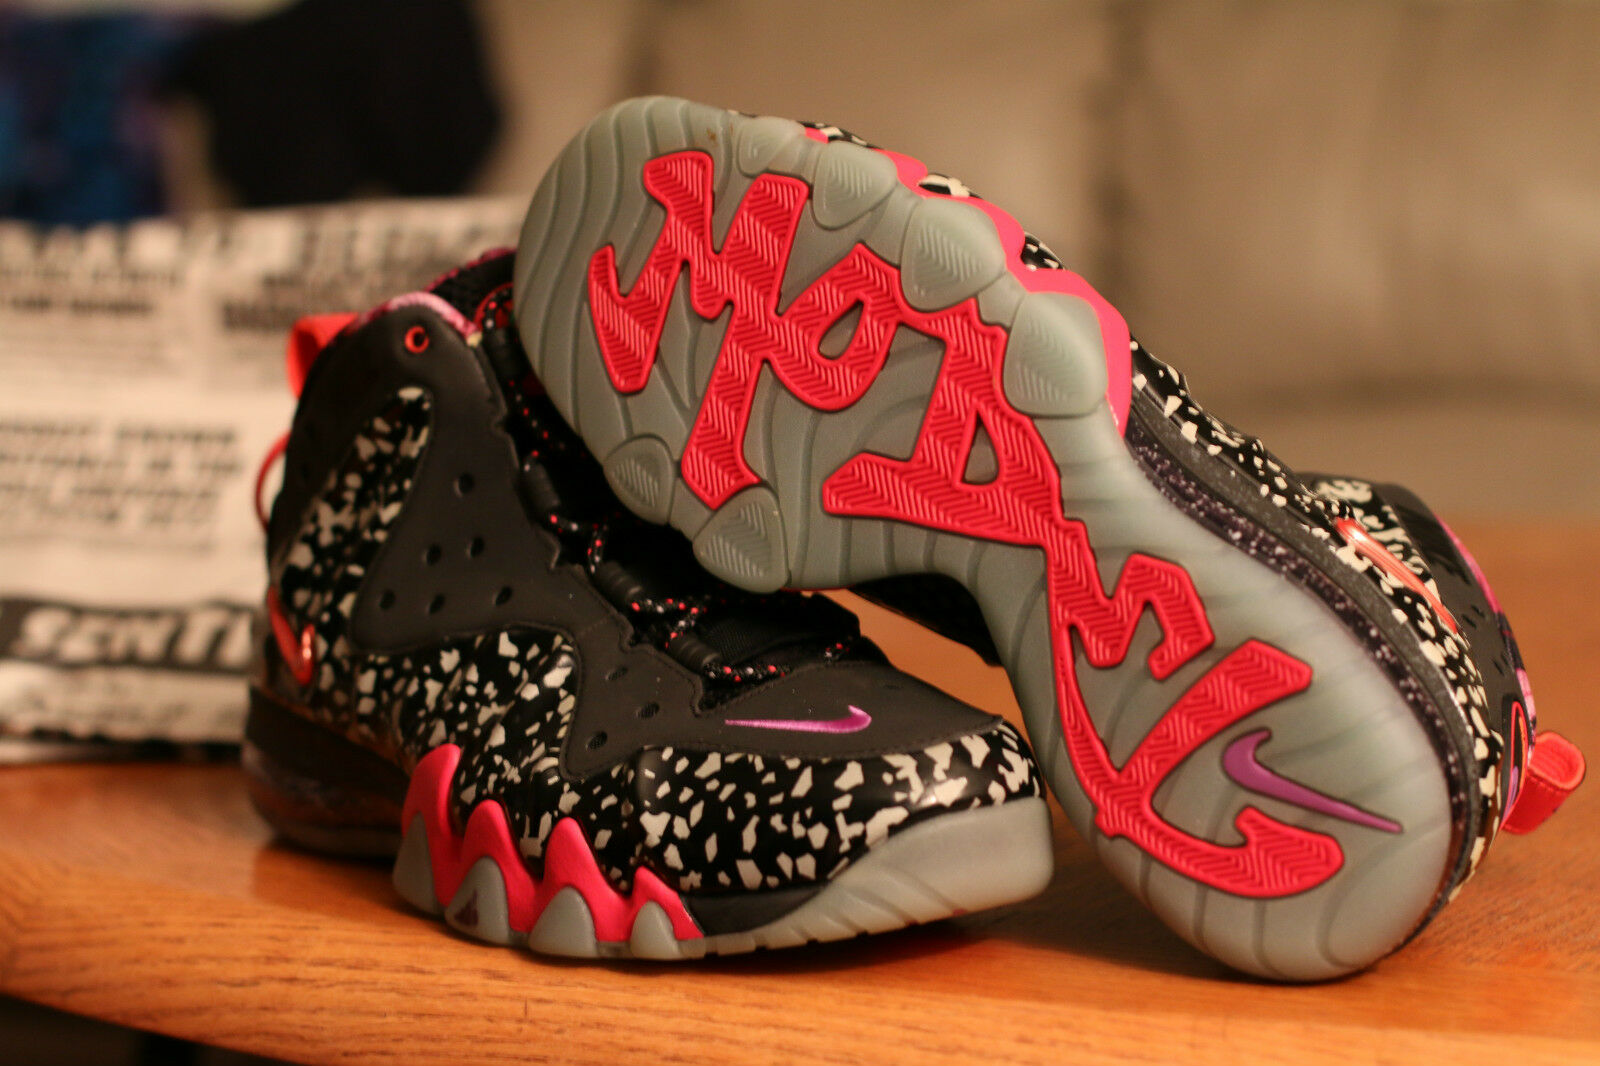 ALLSTAR CHARLES BARKLEY POSITE AREA 72 100% AUTHENTIC NIKE NIB Price reduction Cheap and beautiful fashion